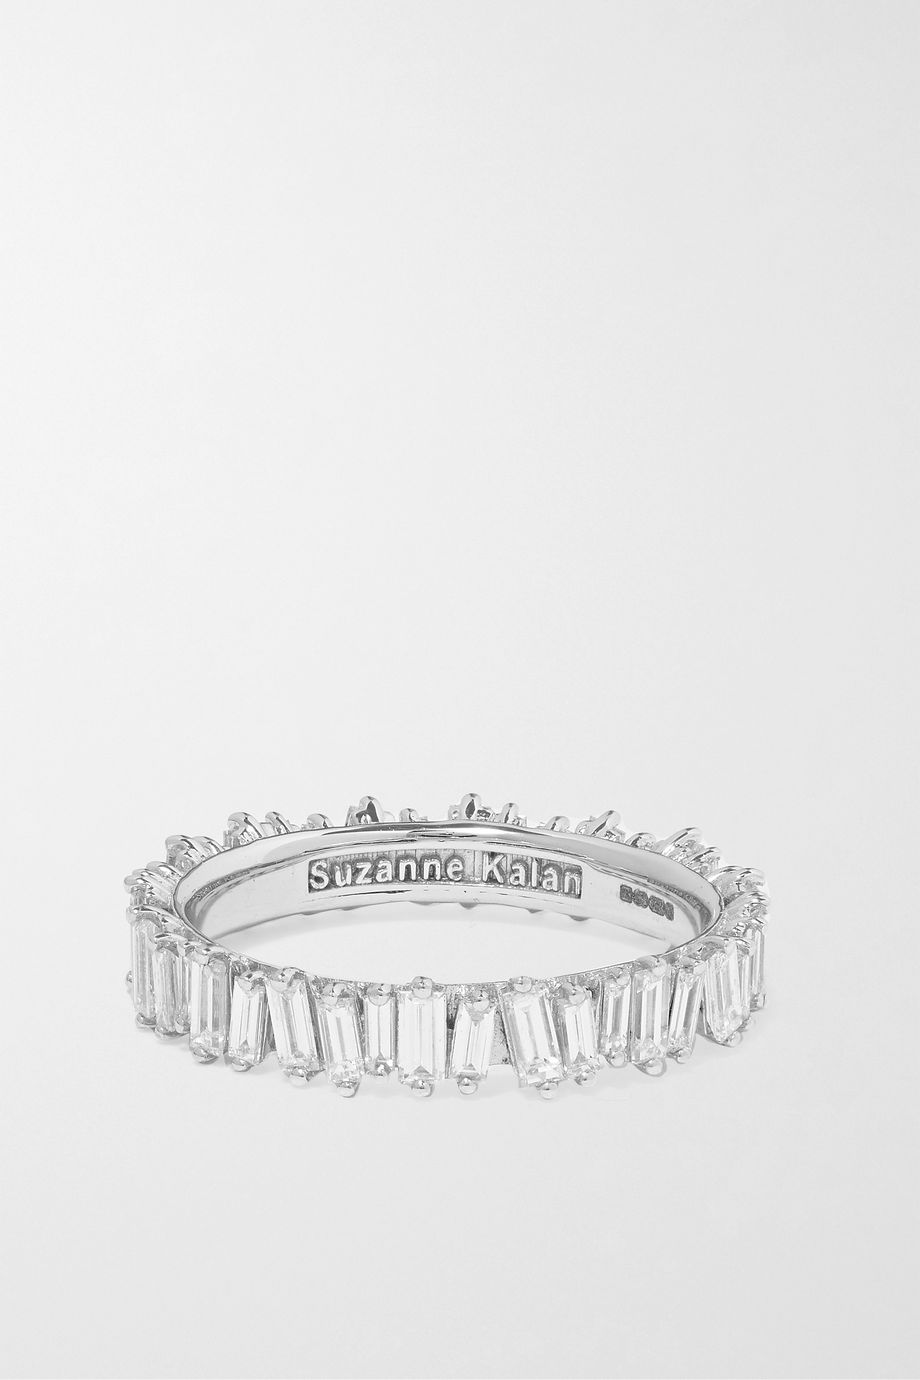 SUZANNE KALAN 18-karat white gold diamond ring